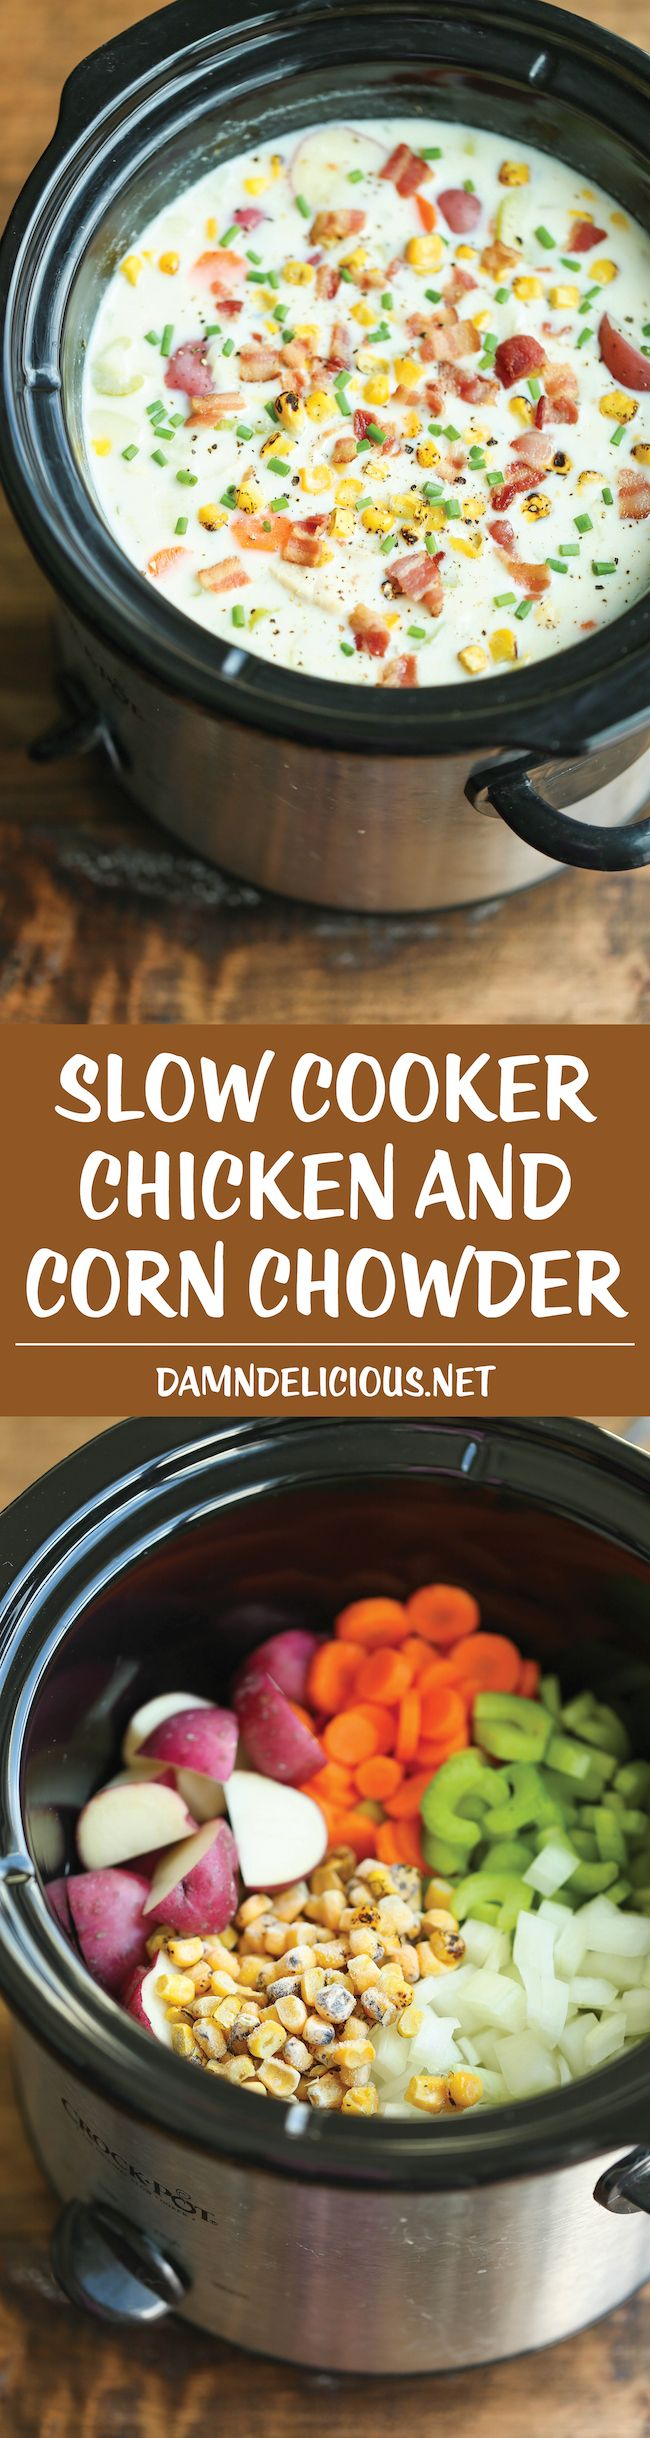 Slow Cooker Chicken and Corn Chowder - Such a hearty, comforting and CREAMY soup! Let the crock pot do all the work! EASY!